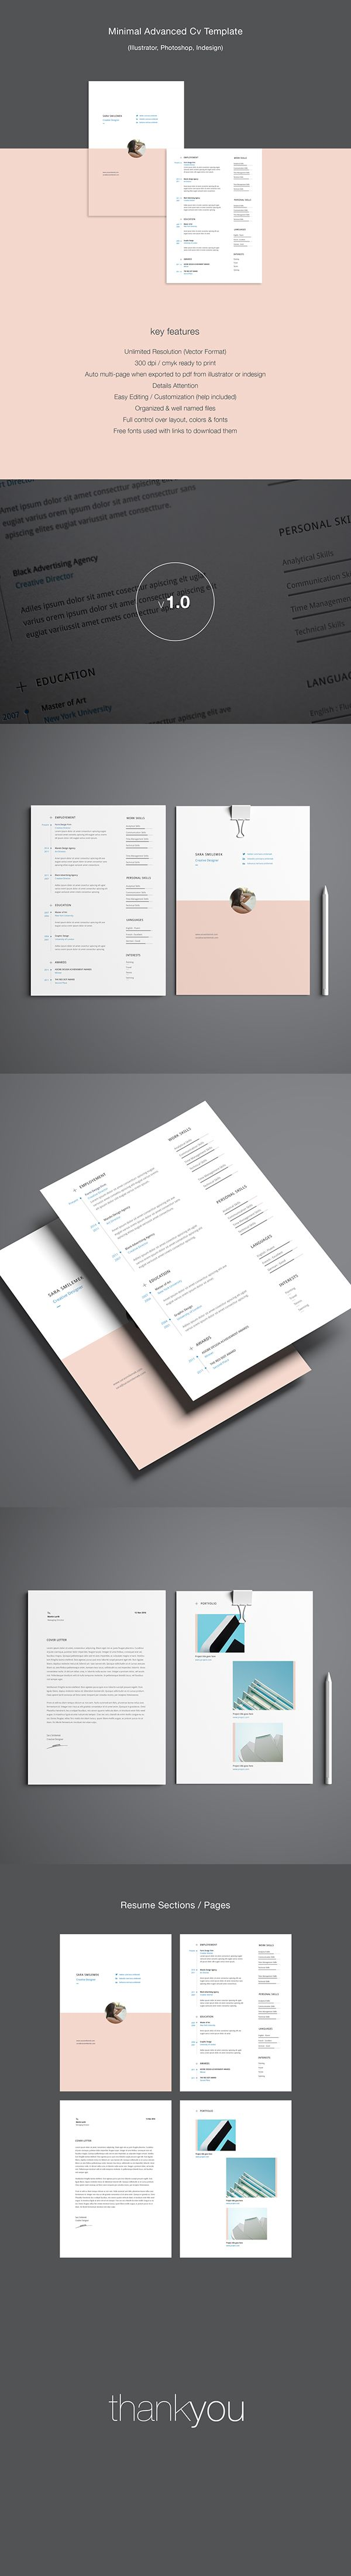 Advanced  Pages Resume Template With For Main Sections  Personal